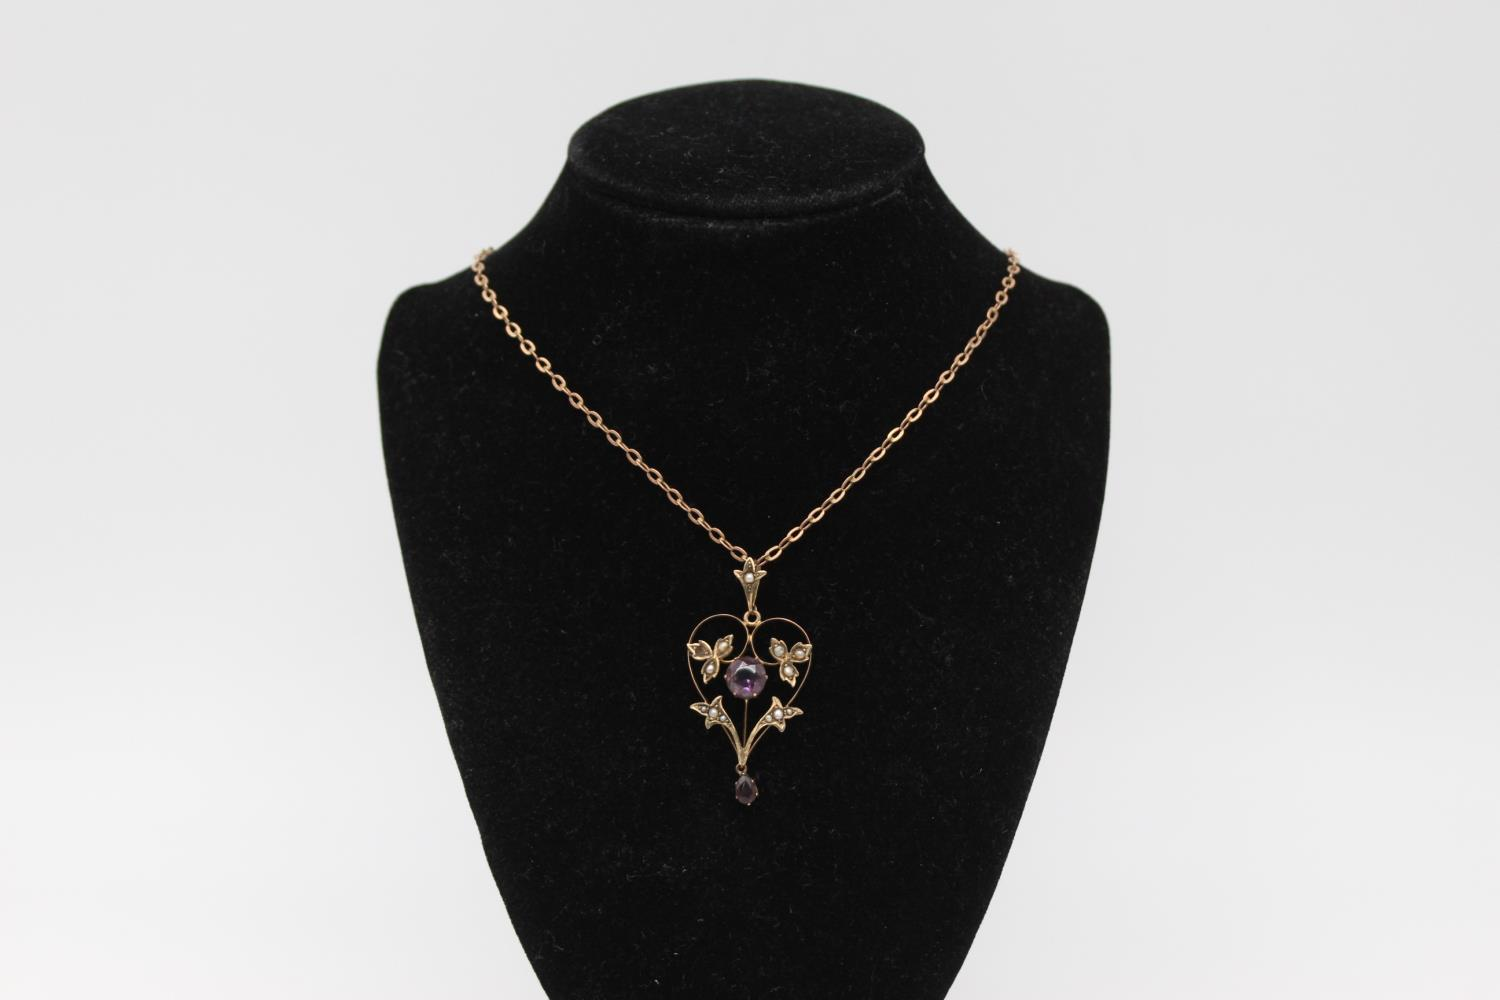 Antique 9ct Gold amethyst & seed pearl pendant necklace *one seed pearl missing 3.7g